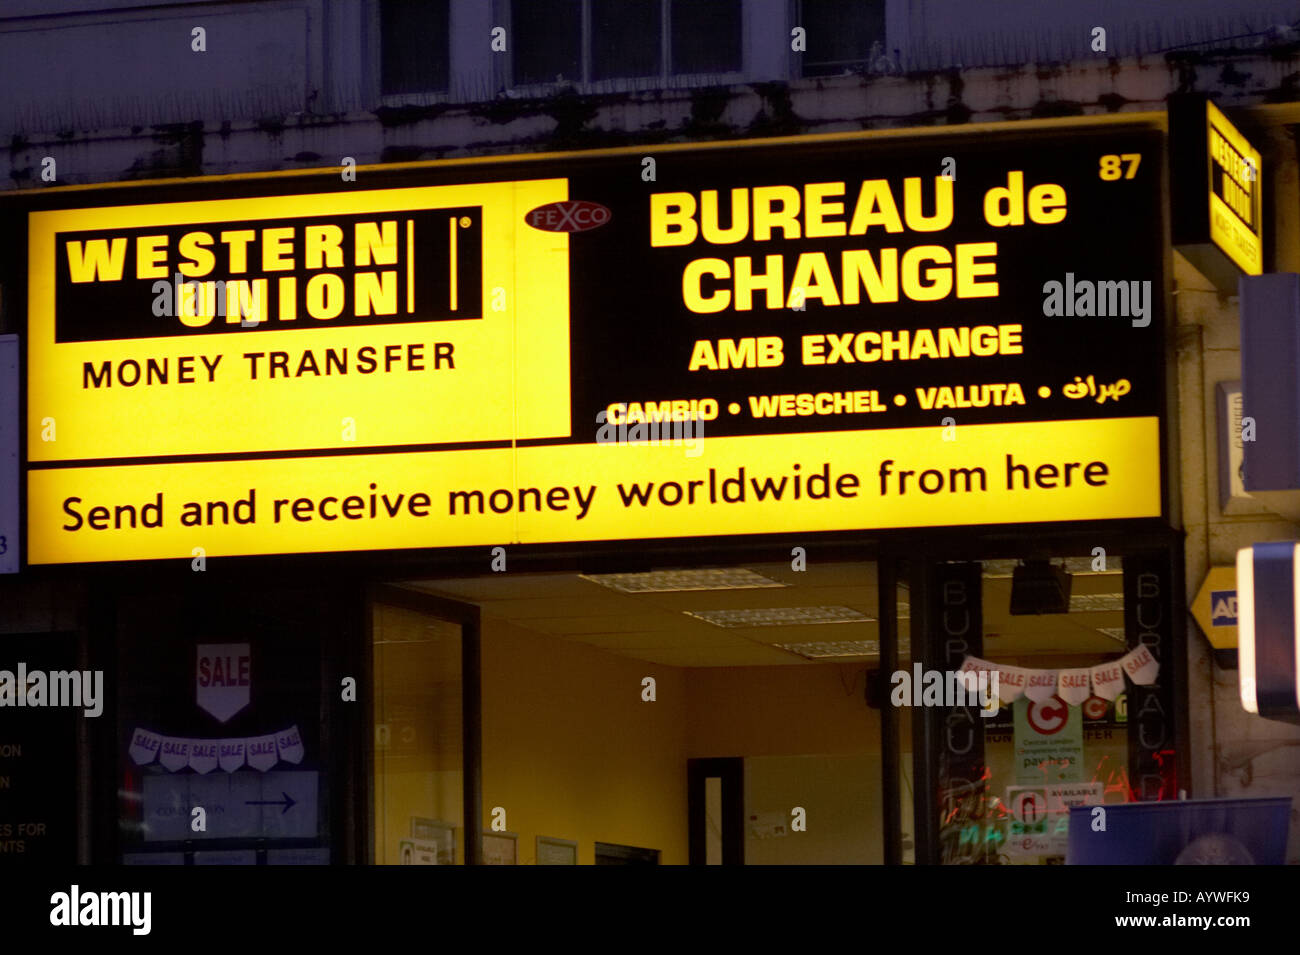 western union money transfer stock photos western union money transfer stock images alamy. Black Bedroom Furniture Sets. Home Design Ideas